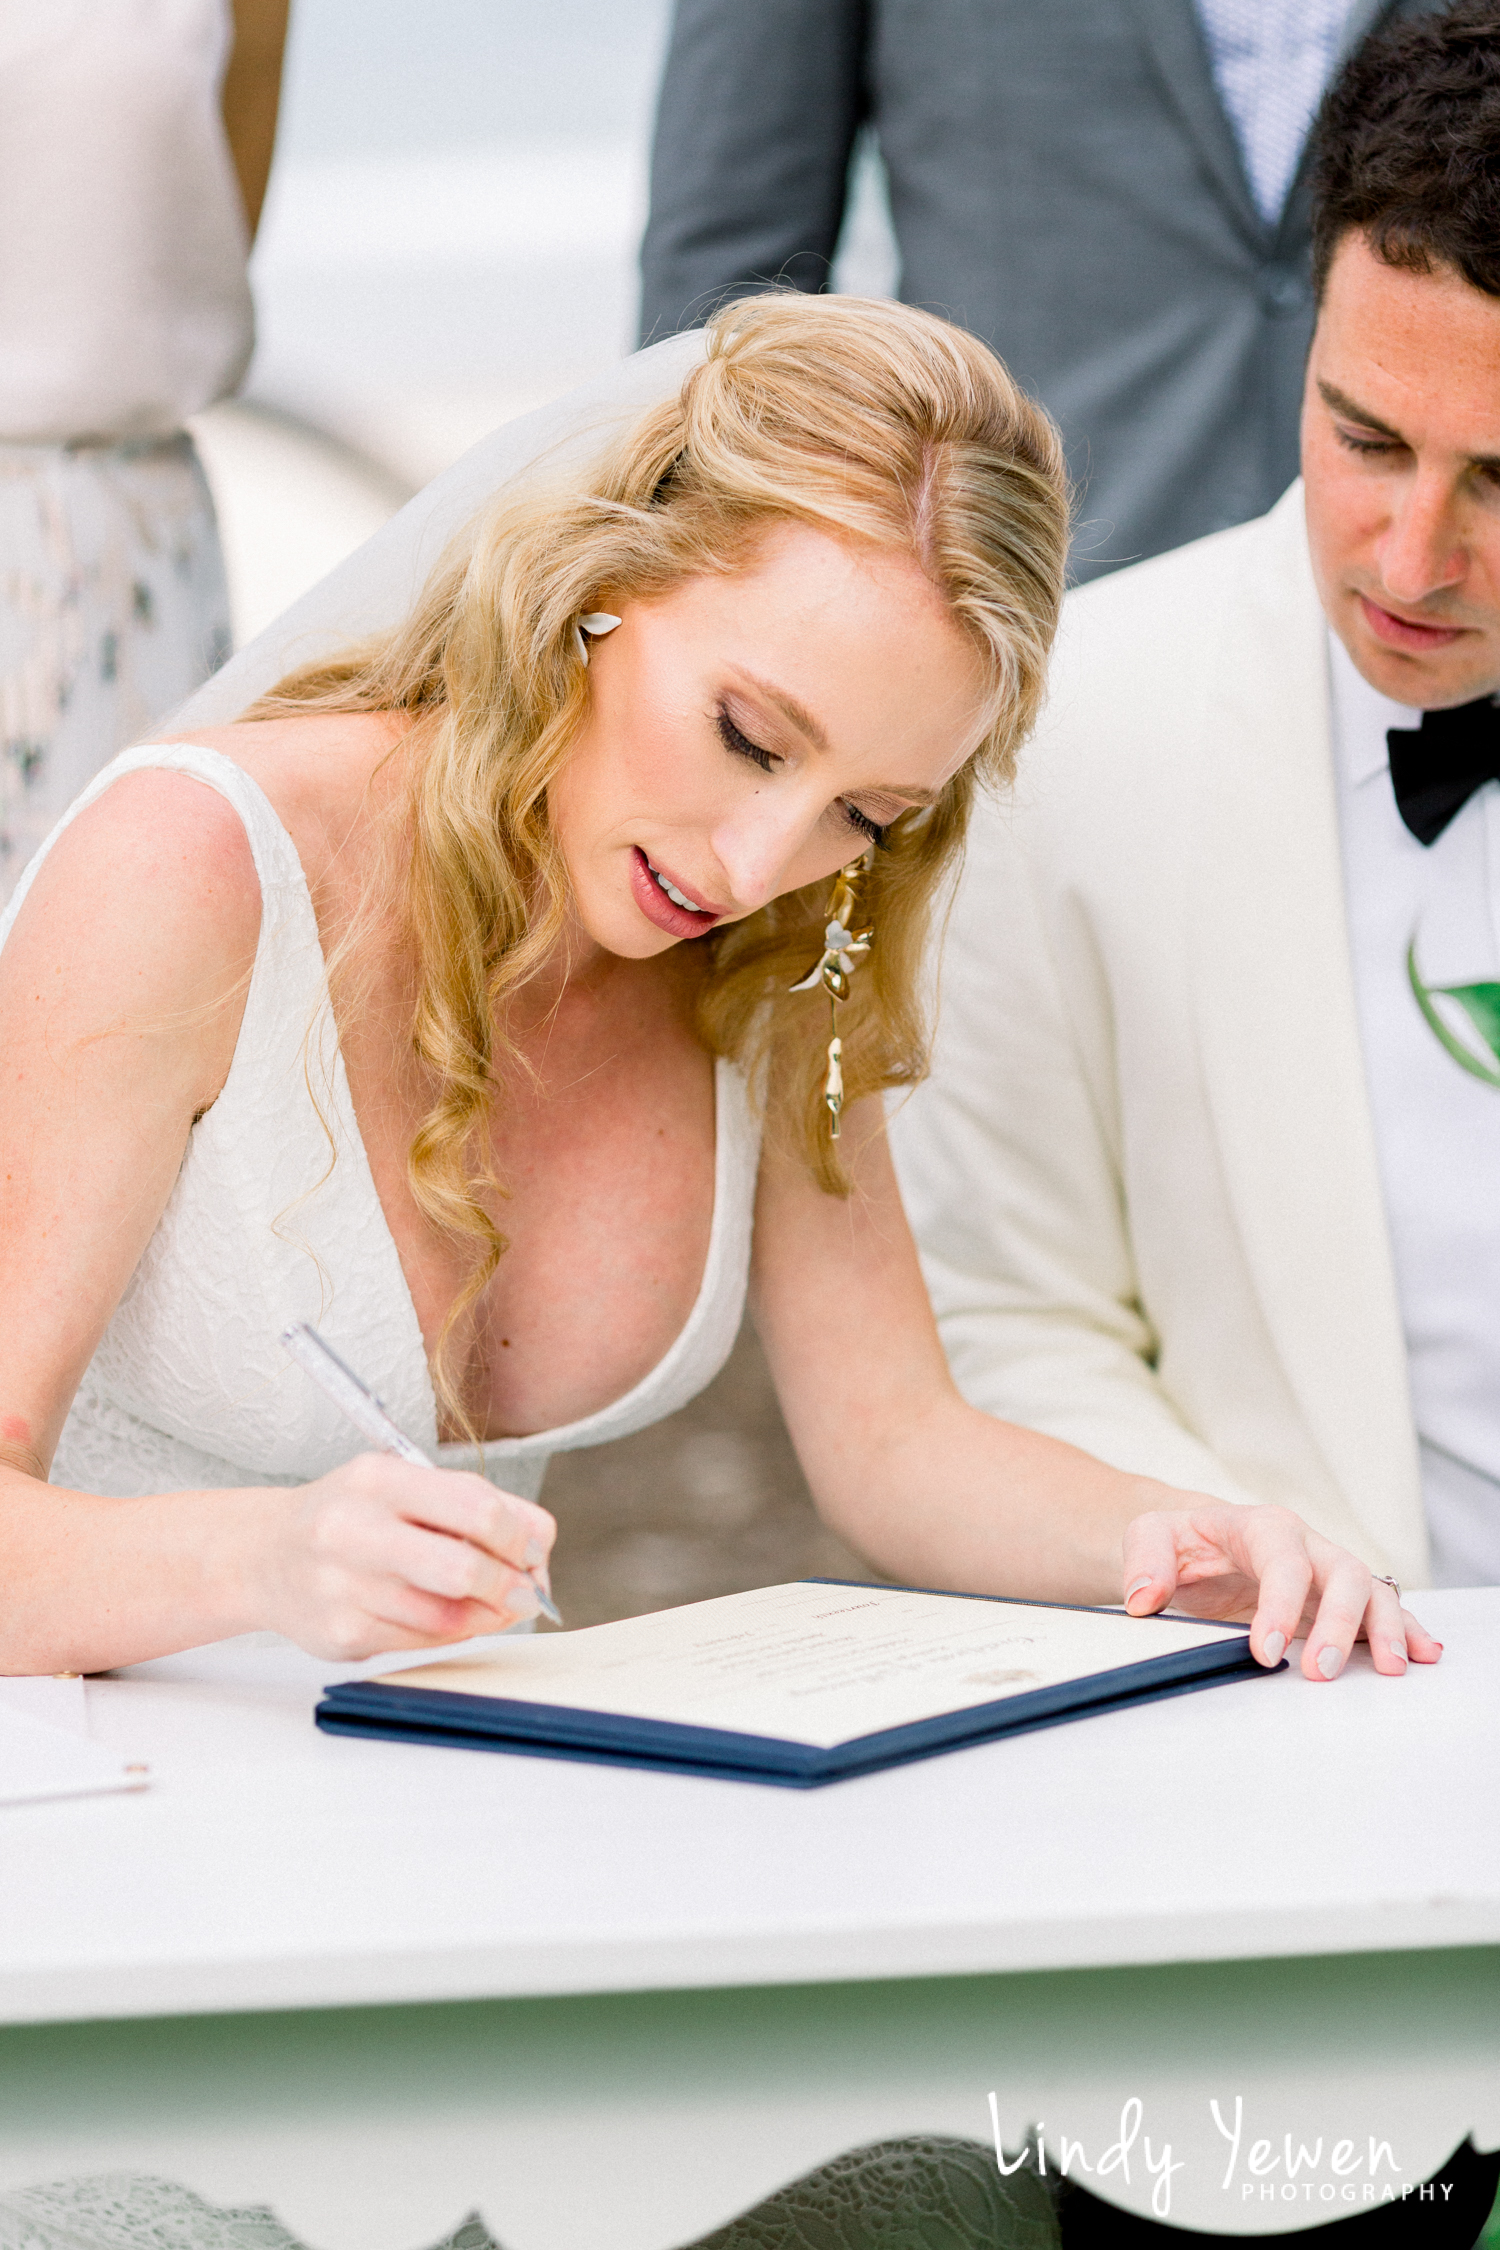 Noosa-Weddings-Amelia-Michael 133.jpg